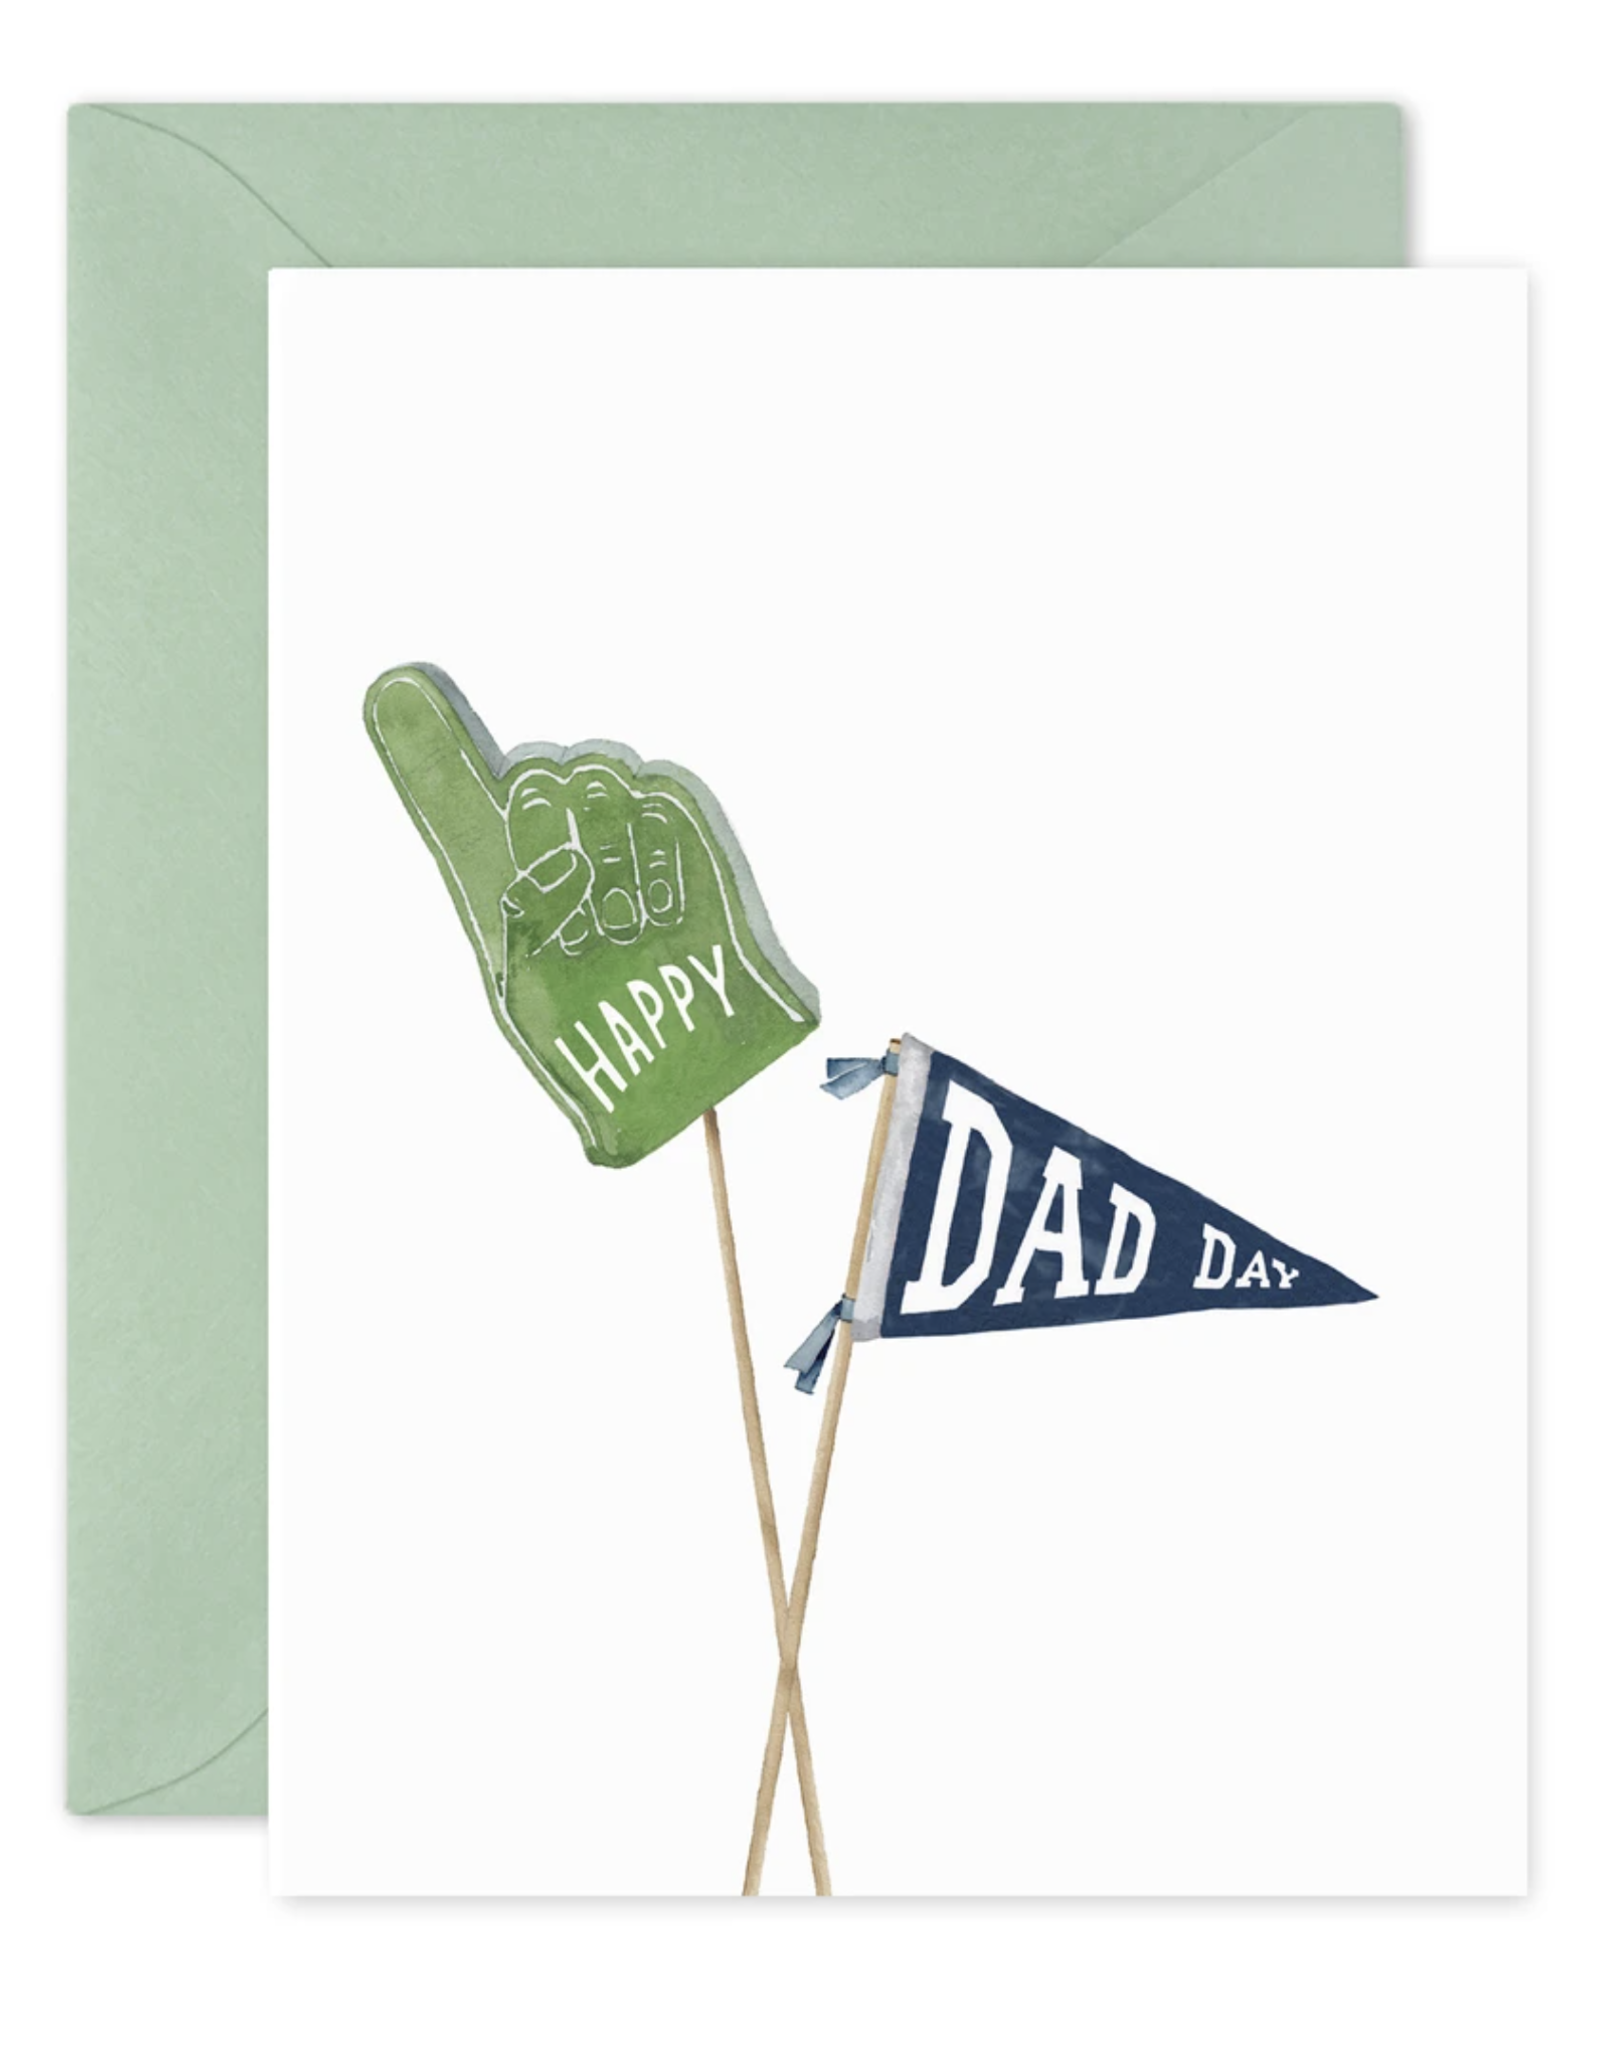 Happy Dad Day Greeting Card - E. Frances Paper